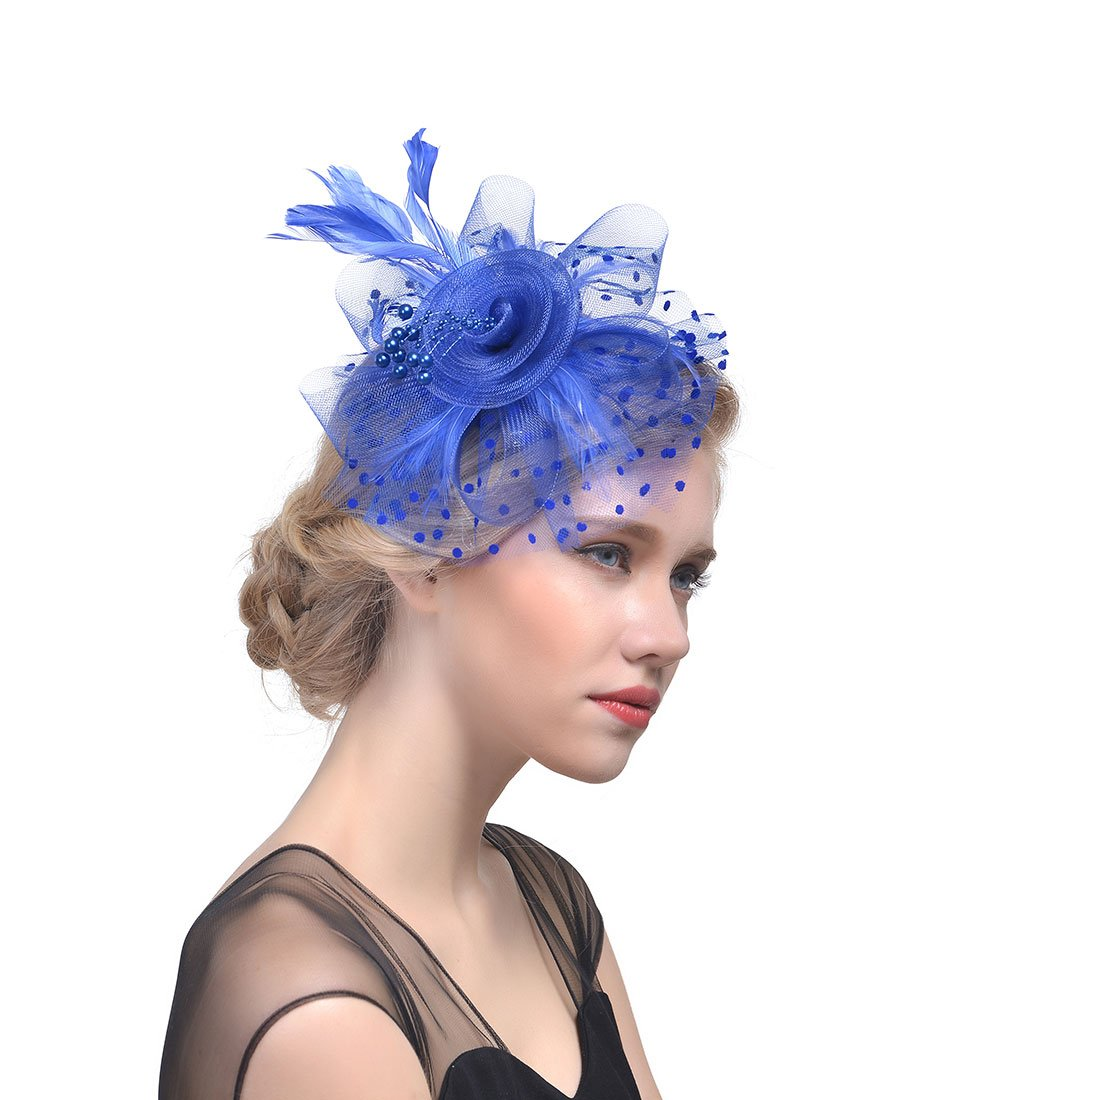 MITIN Flower Cocktail Tea Party Headwear Feather Fascinators Top Hat for Girls and Women with Clip and Headband Blue